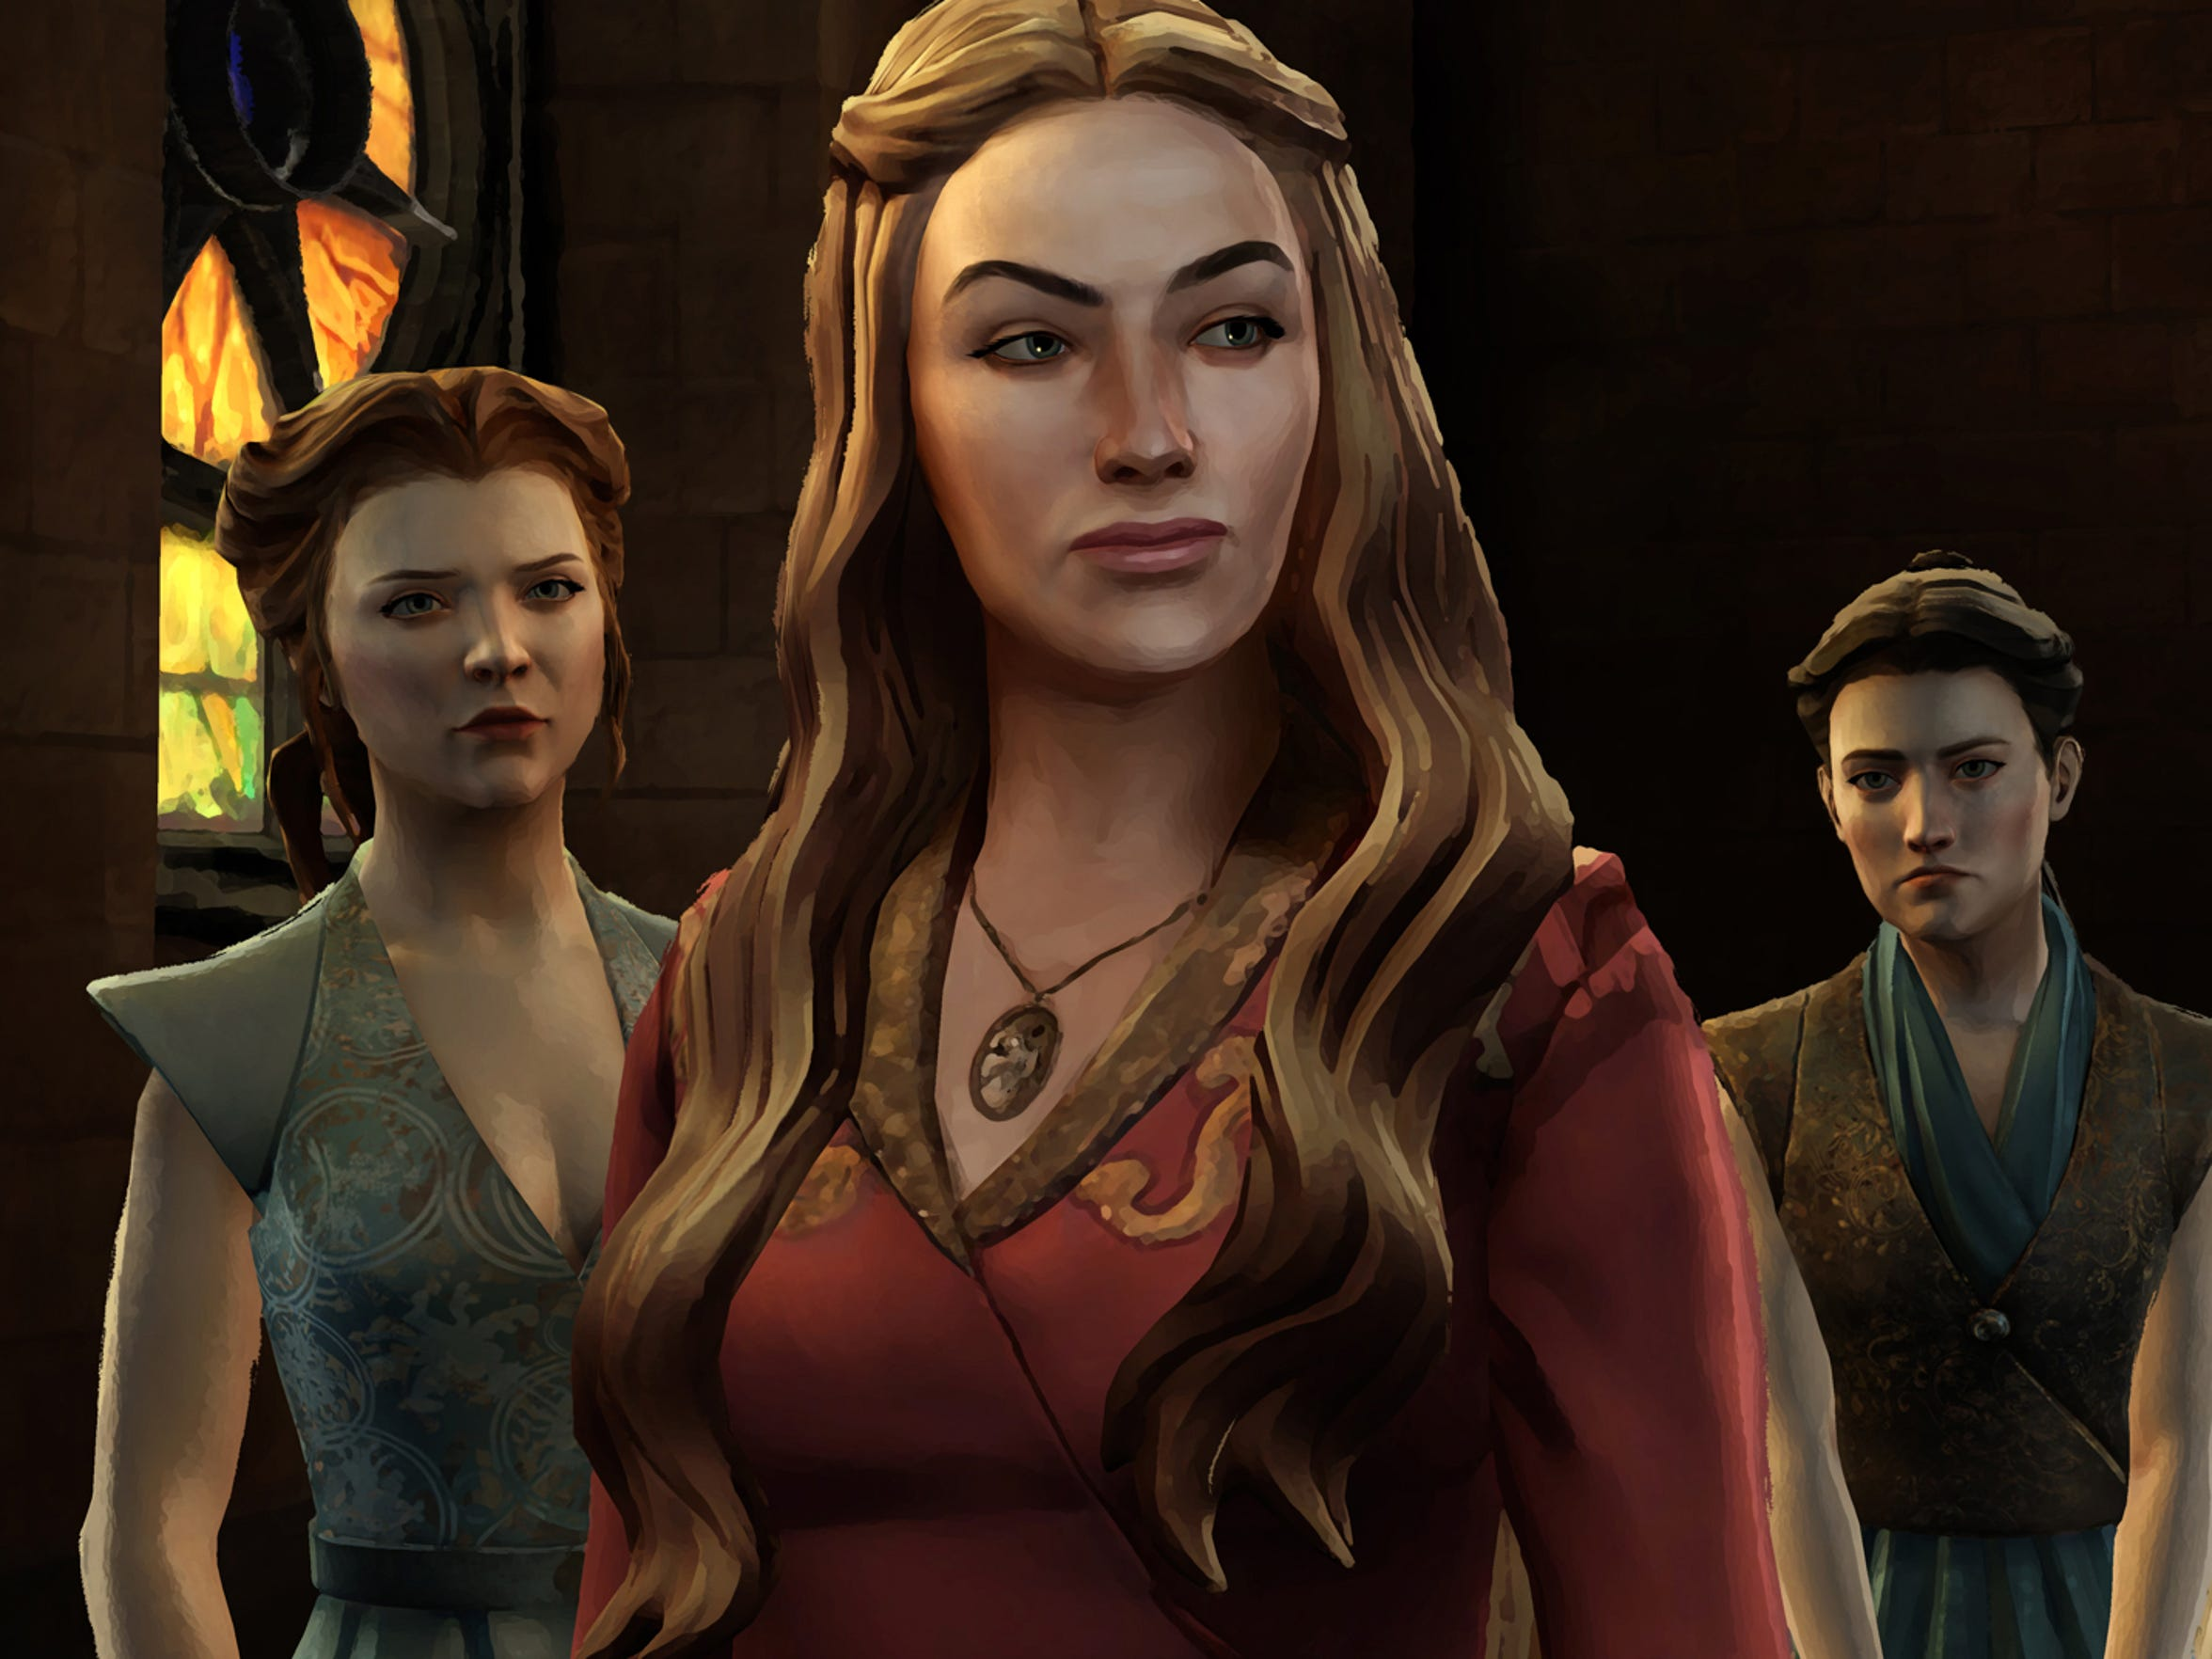 Cersei Lannister is up to her conniving ways again